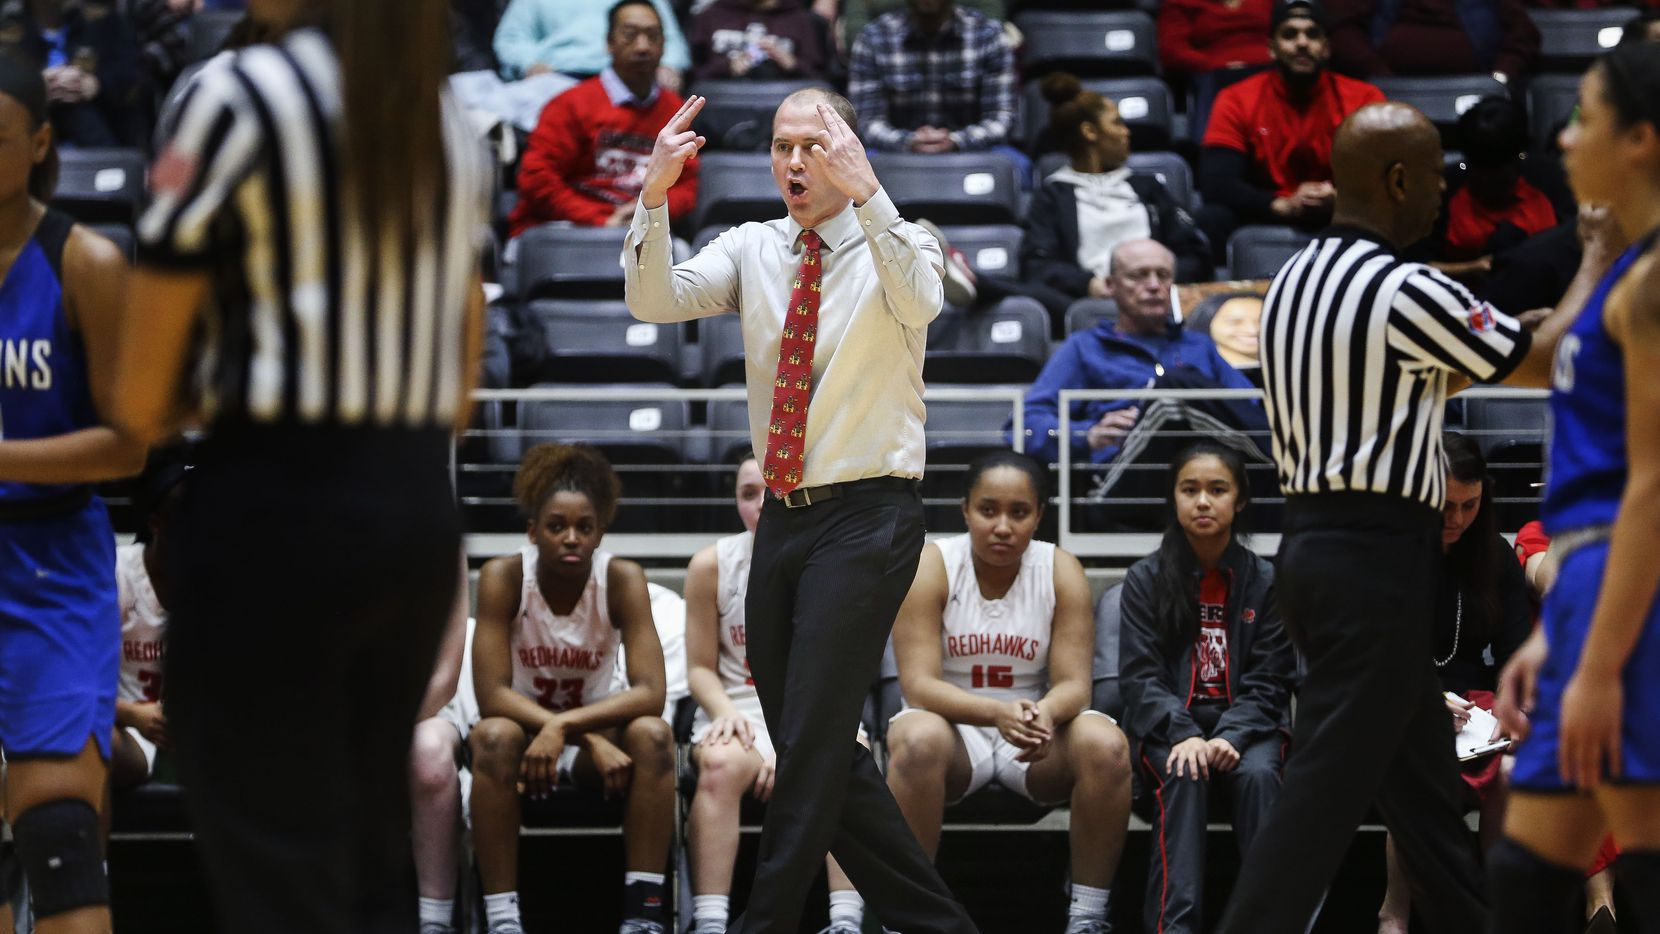 Frisco Liberty head coach Ross Reedy calls out a play during the first half of a girls basketball Class 5A Region II semifinal between Frisco Liberty and North Forney on Friday, Feb. 22, 2019 at the Curtis Culwell Center in Garland, Texas.